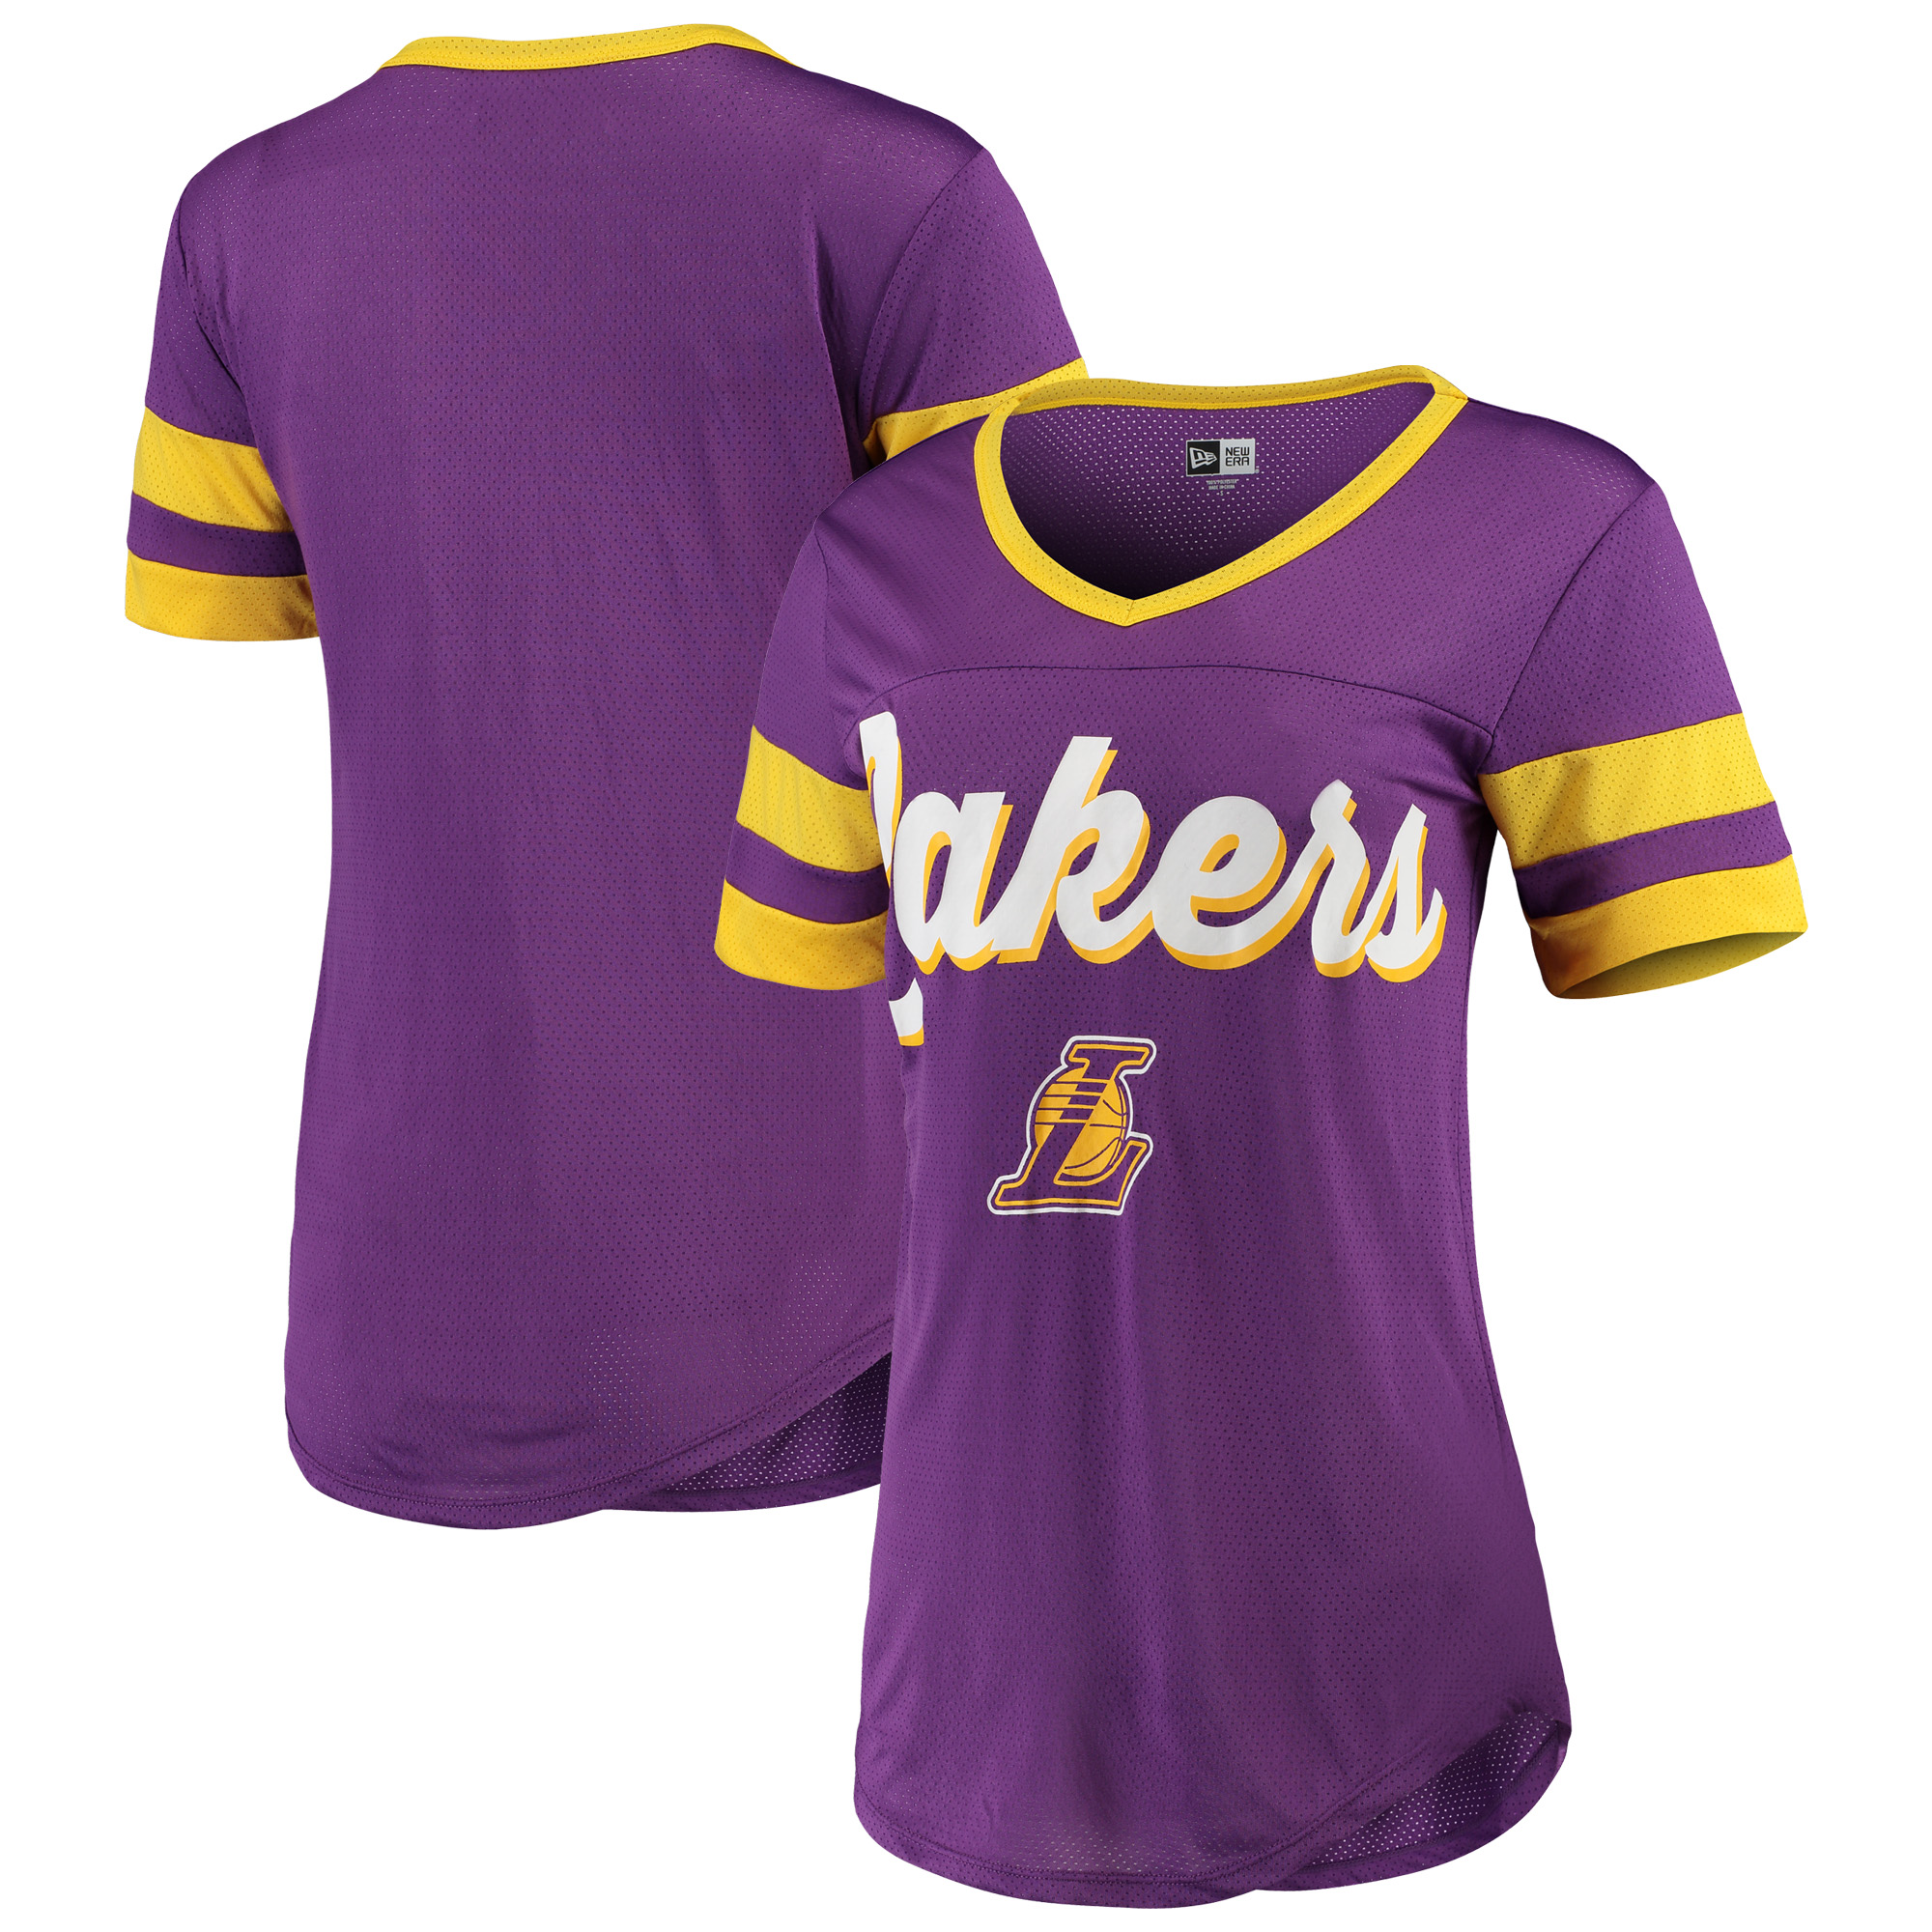 Los Angeles Lakers New Era Women's Contrast Insert V-Neck T-Shirt - Purple/Gold